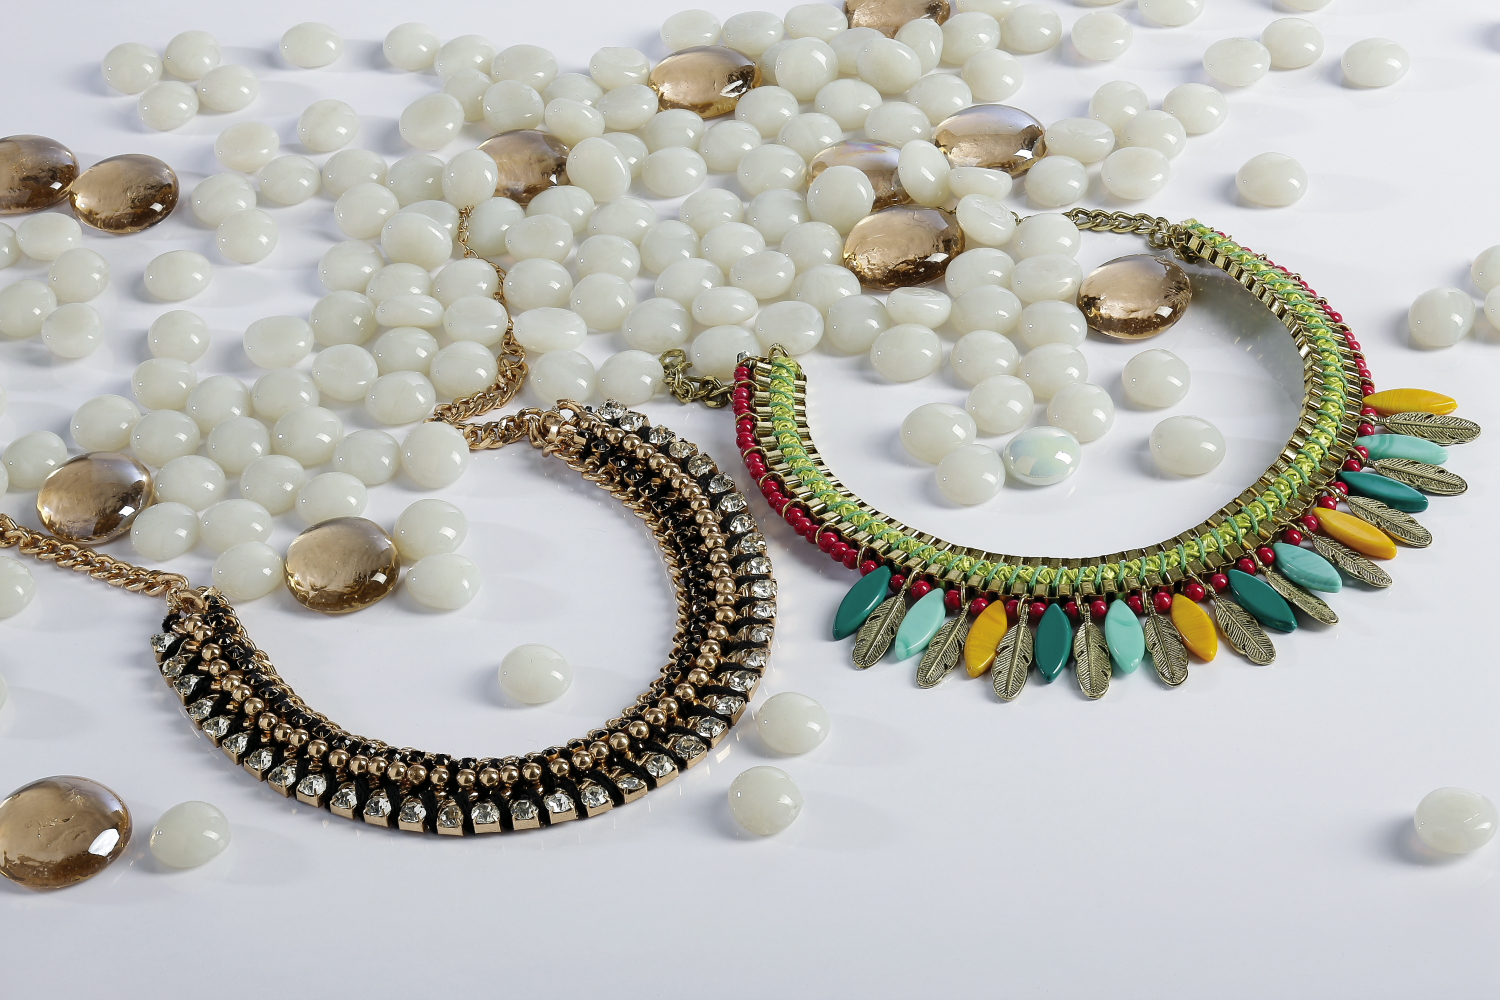 Indian Fashion Jewellery and Accessories Show goes virtual for 2020